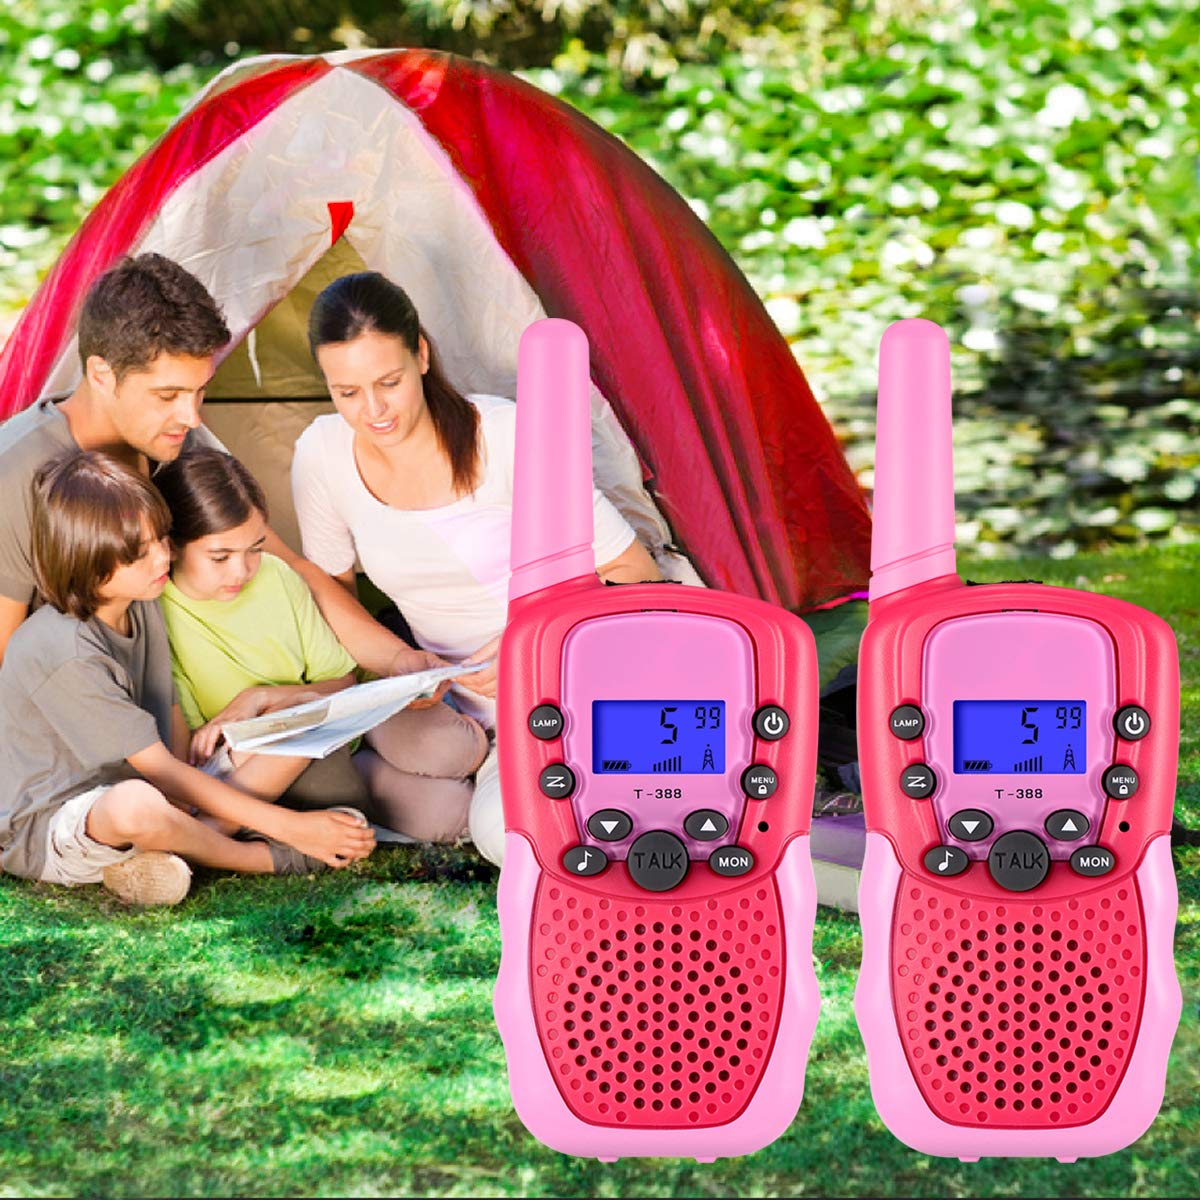 SnowCinda Toys for 3-12 Year Old Girls,Walkie Talkies for Kids with 22 Channels 2 Way Radio 3 Miles Long Range Toy for Outside Adventures, Best Gifts for 4-8 Year Old Boys and Girls by SnowCinda (Image #6)